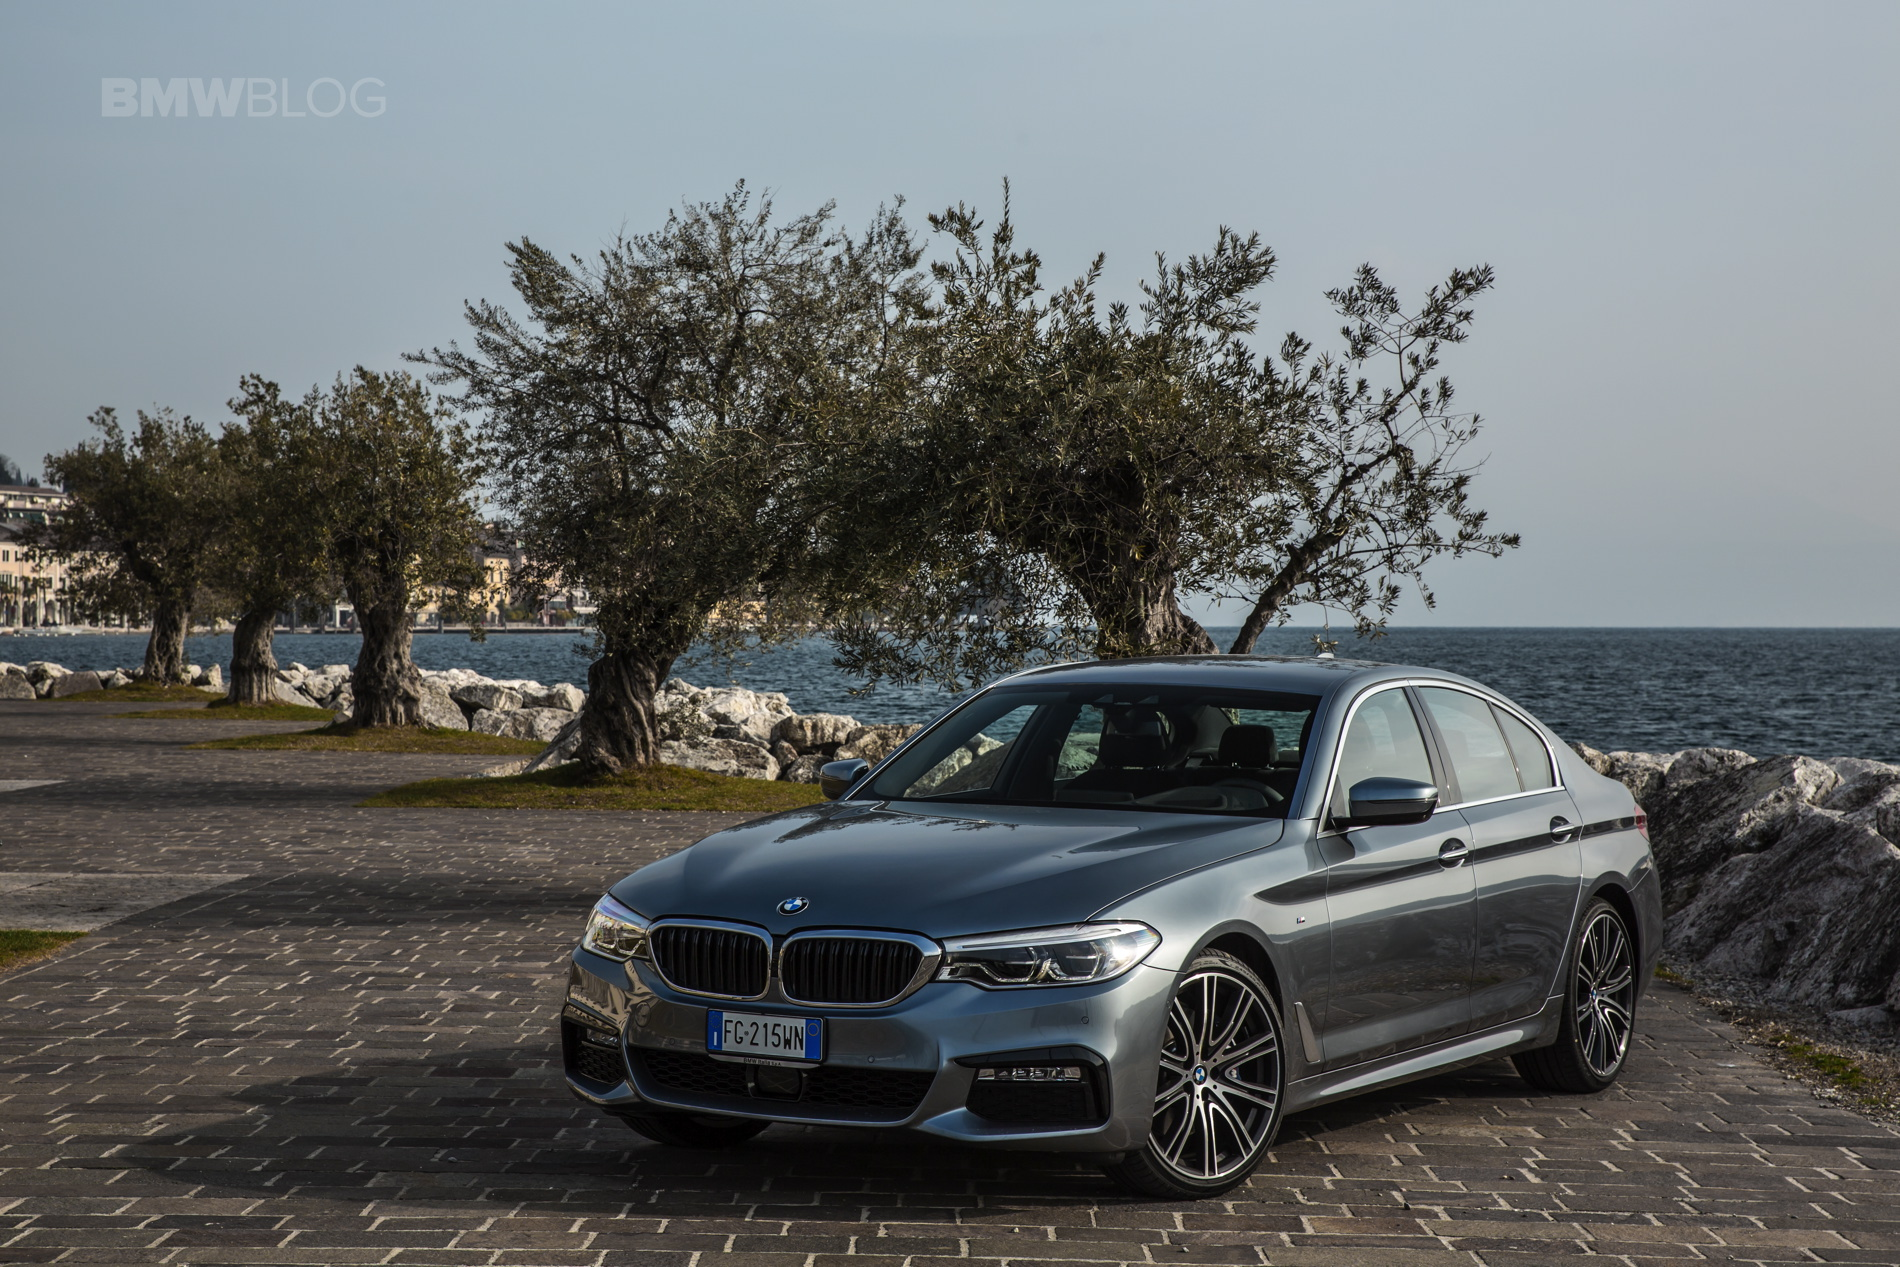 2017 BMW 5 Series Italy 30